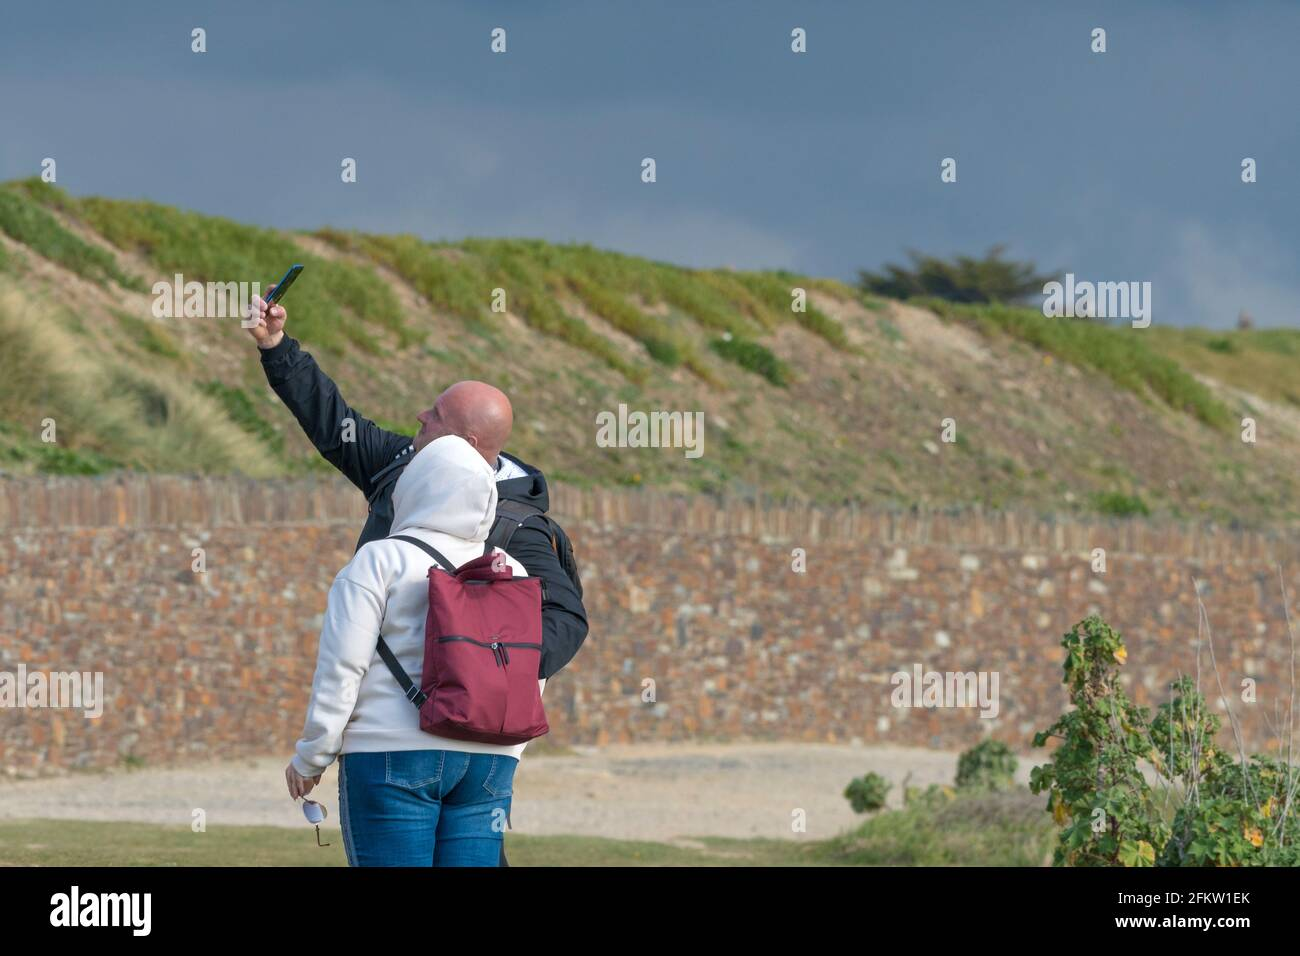 A couple of holidaymakers using a smartphone to take a selfie photograph on holiday in Newquay in Cornwall. Stock Photo